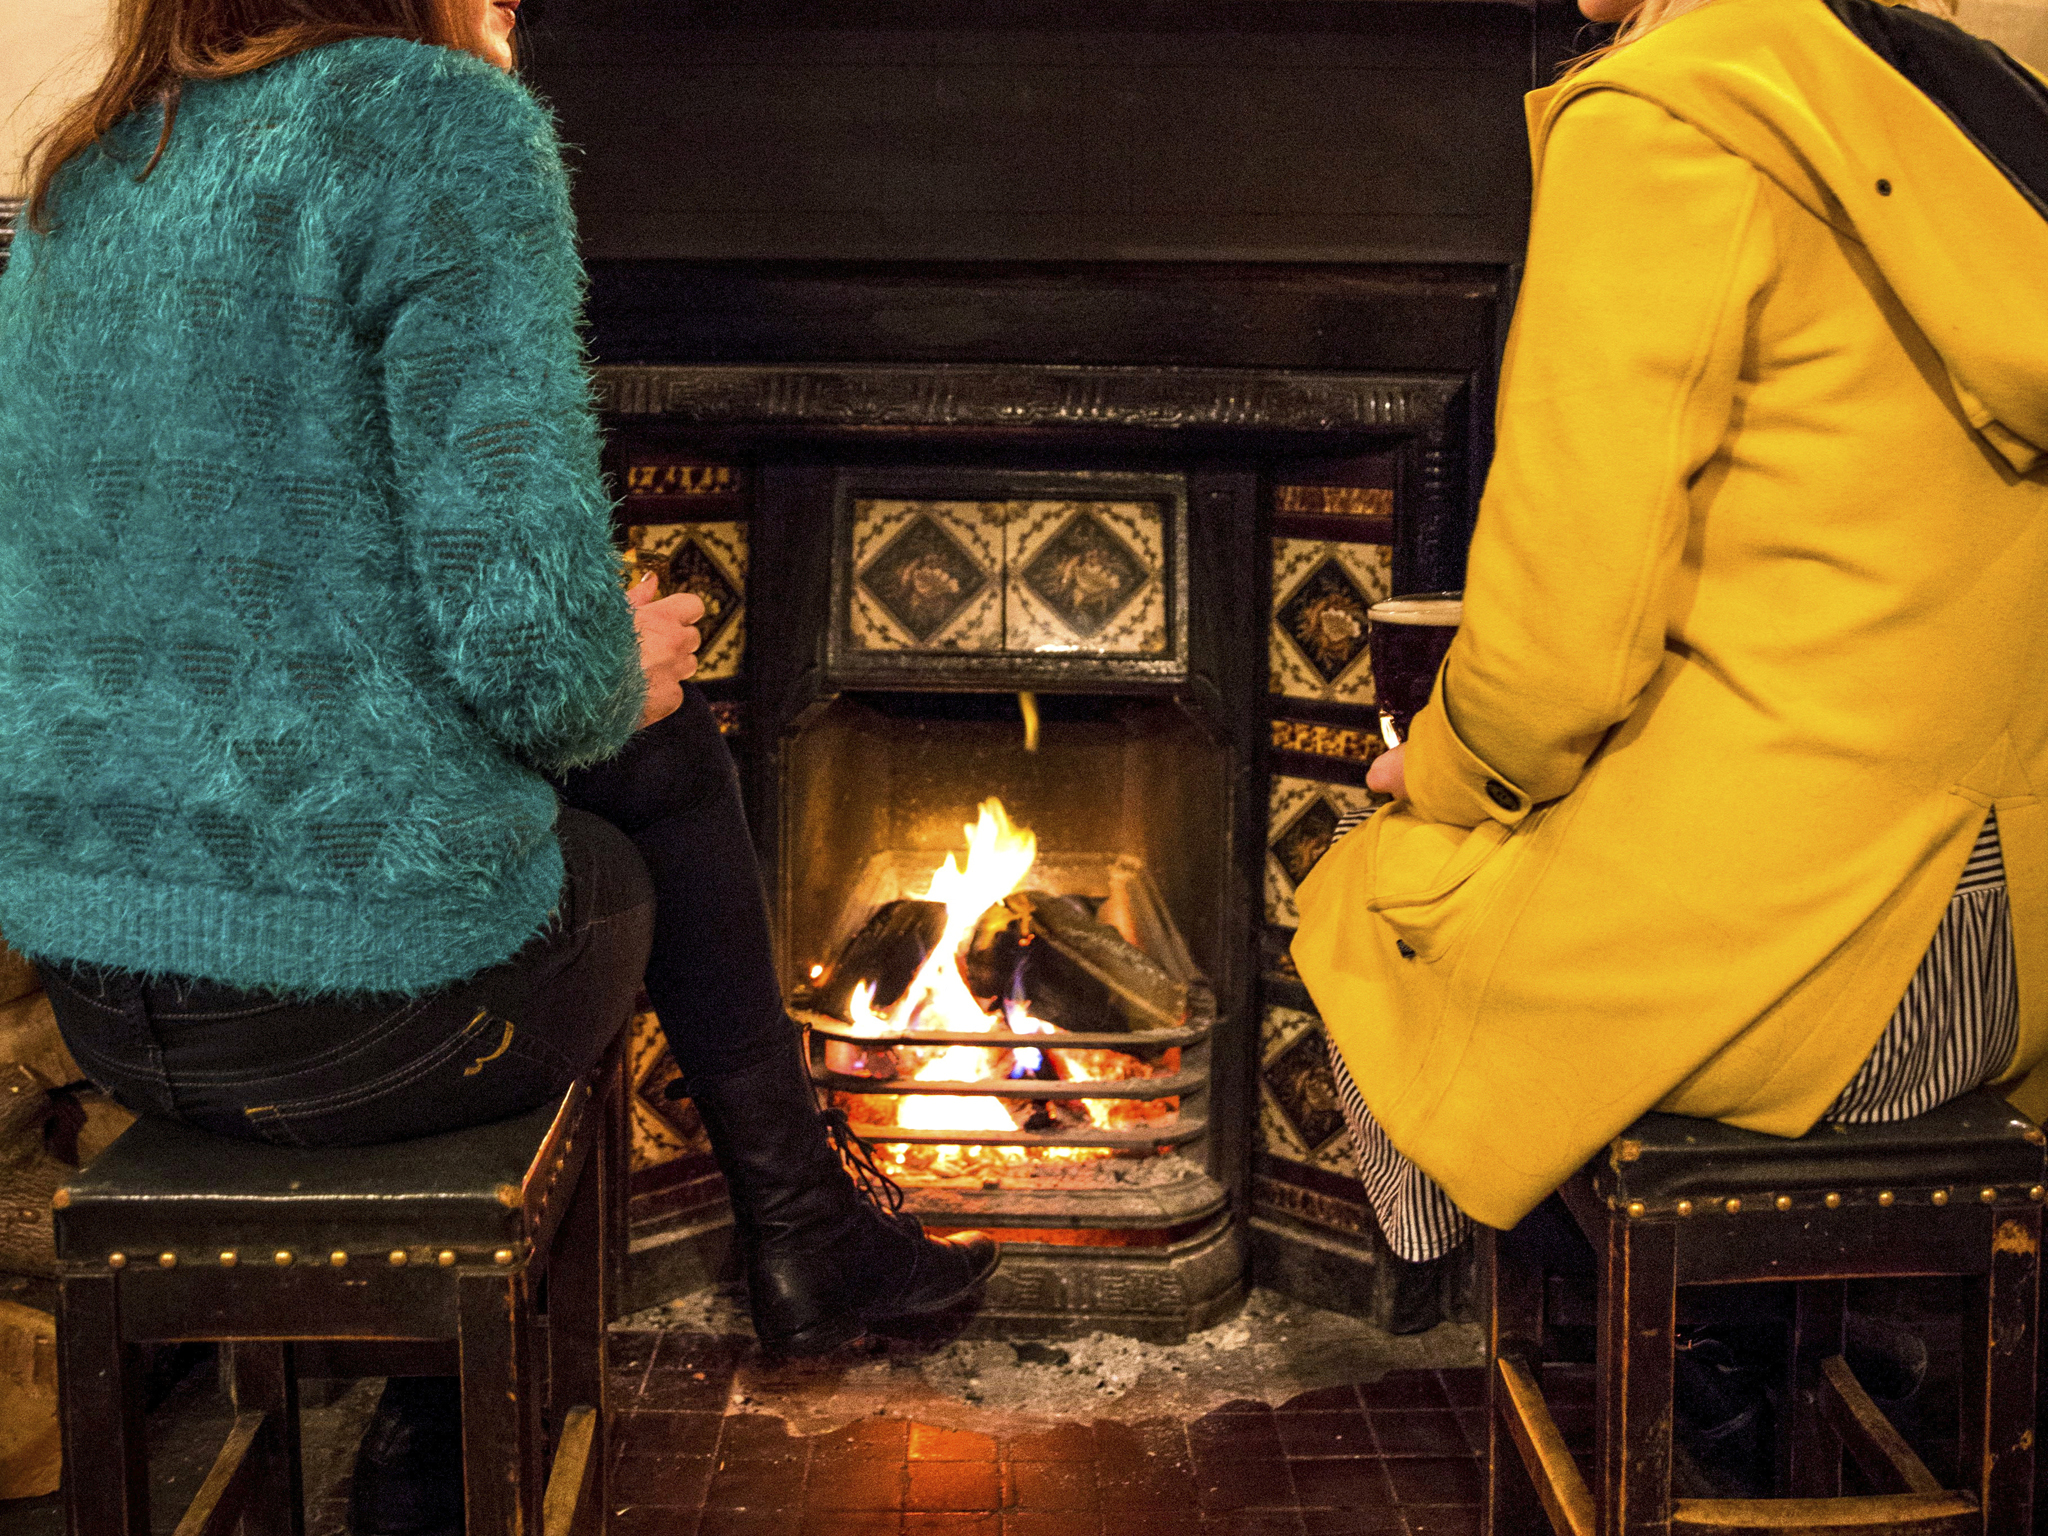 southampton arms, pubs with fires